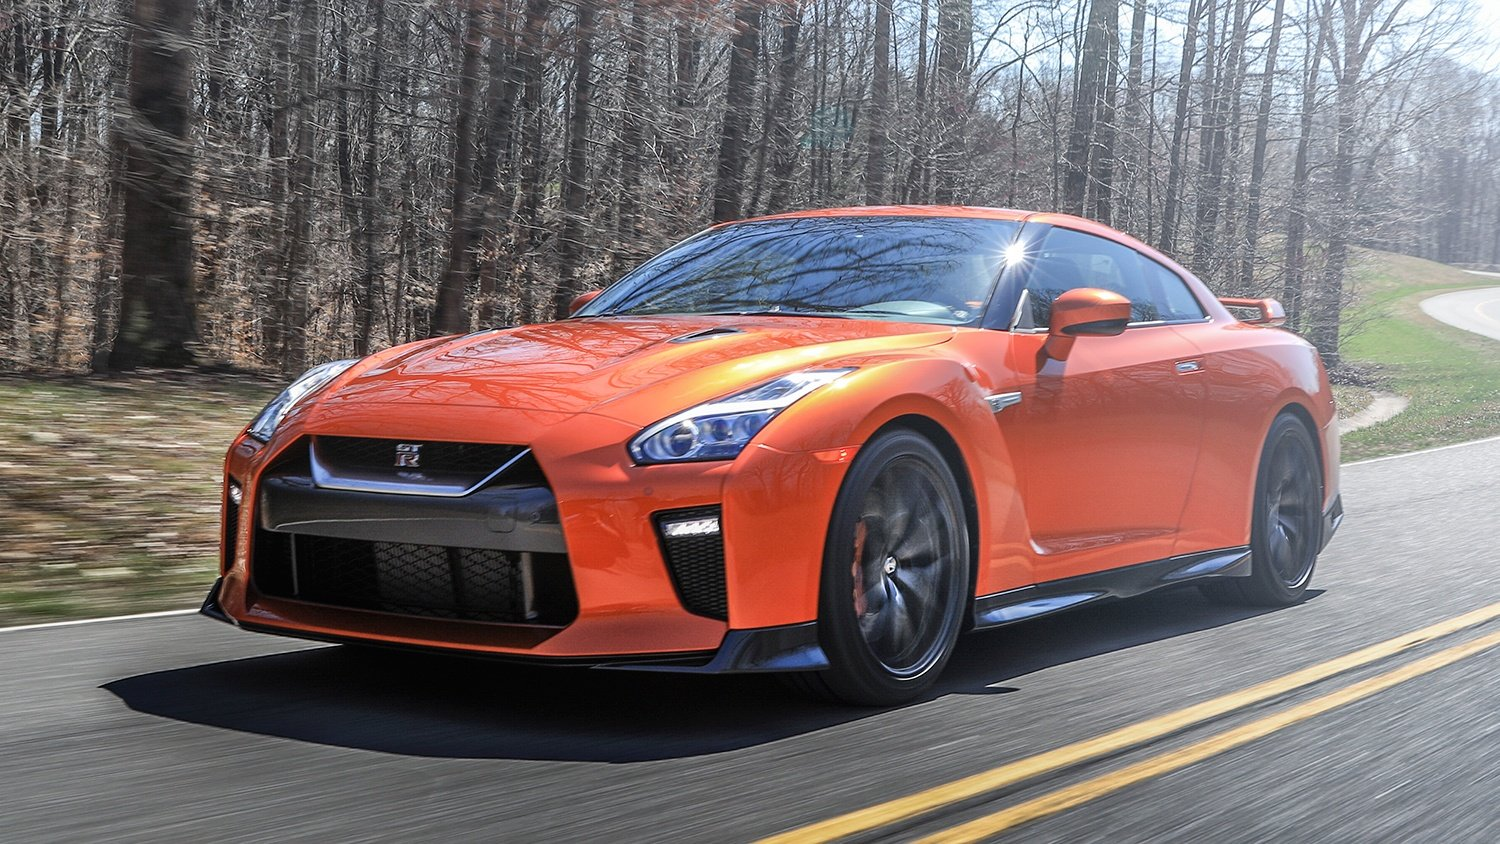 Latest Top Car Nissan Gtr 2017 Wallpaper One Stop Solution Free Download